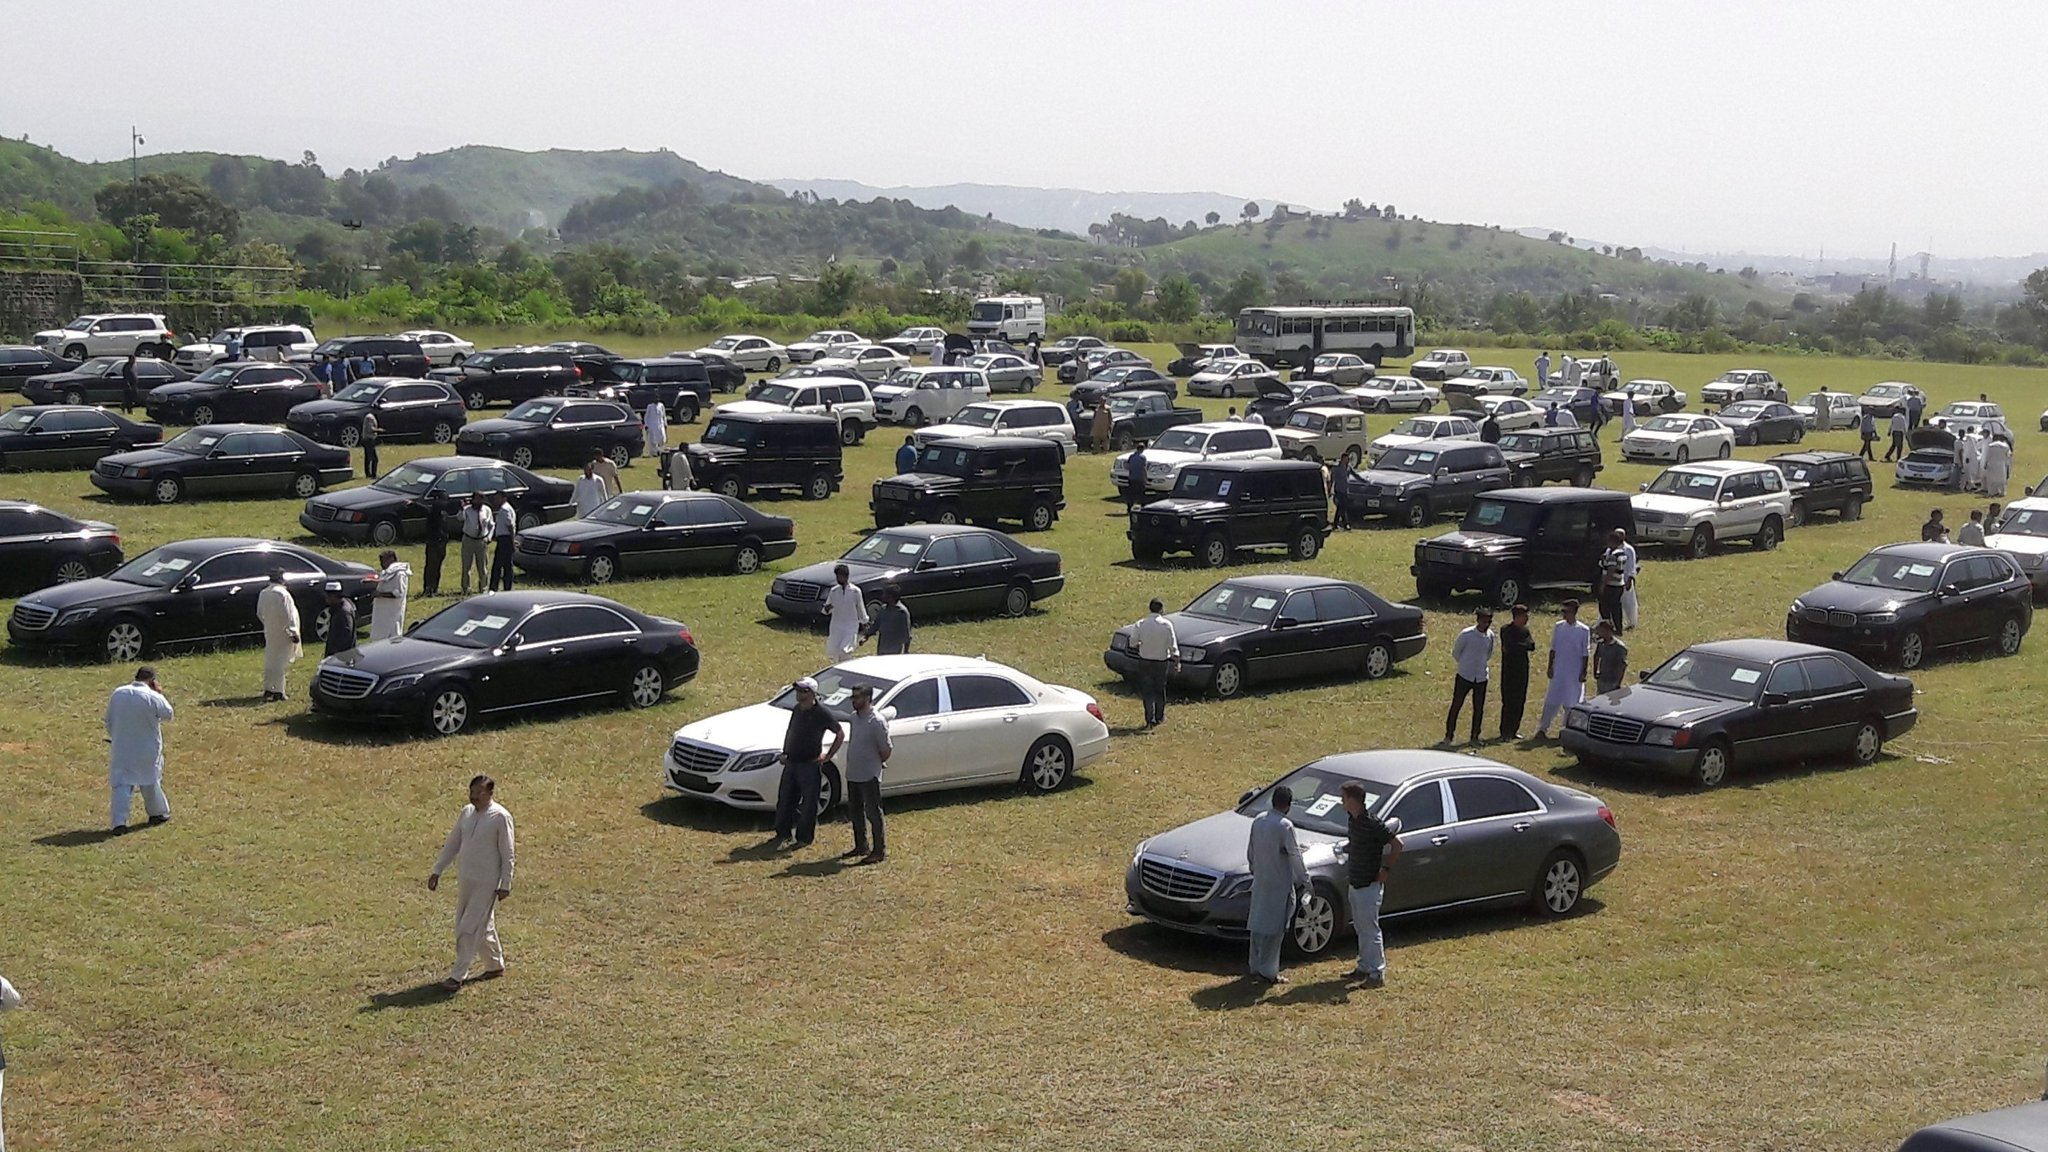 Pakistan auctions fleet of official cars in austerity drive